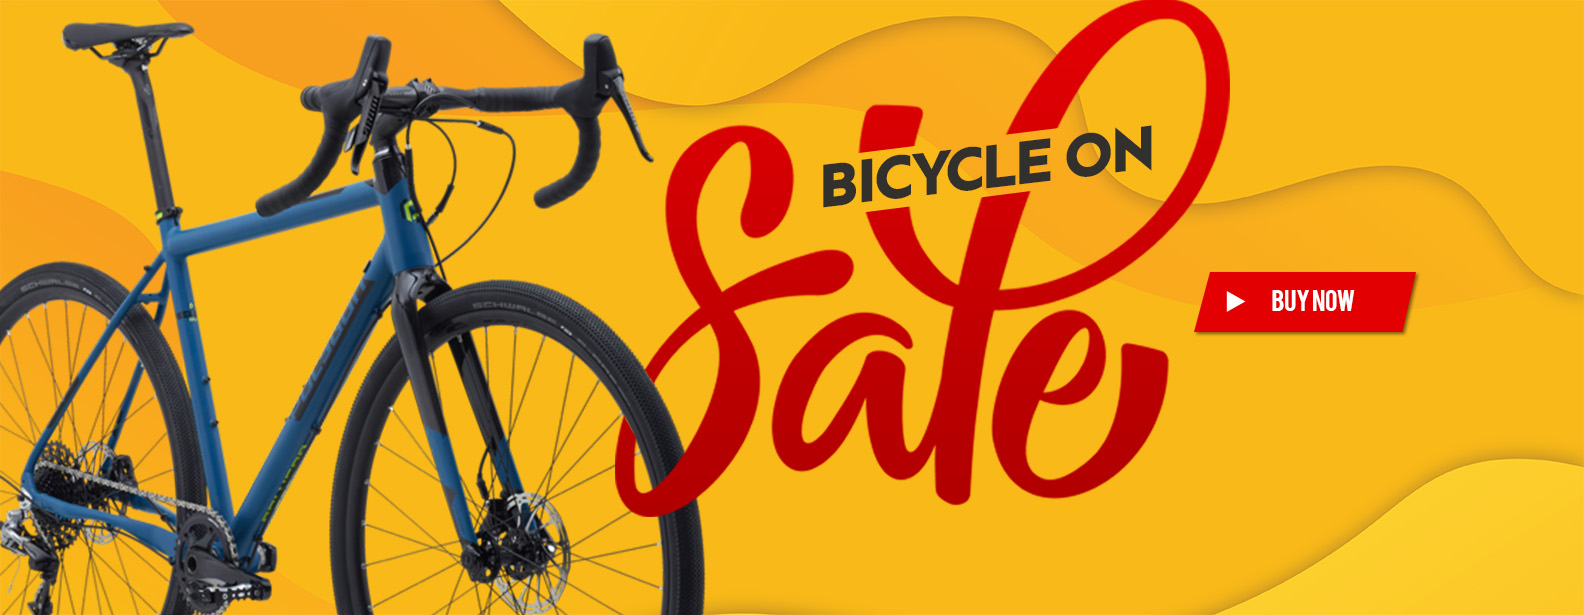 Bicycle On Sale